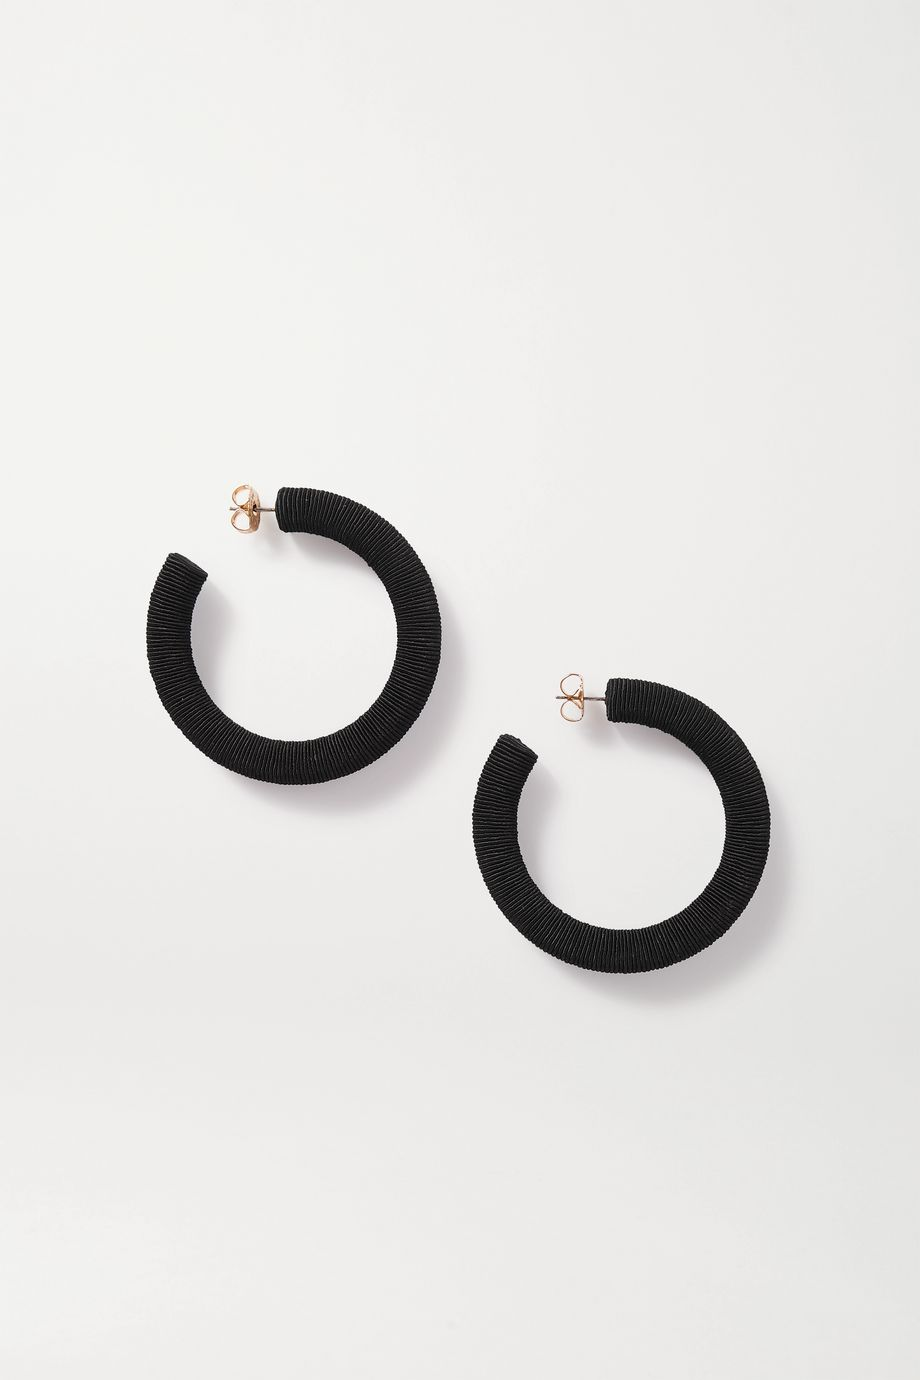 Rebecca de Ravenel Cord hoop earrings